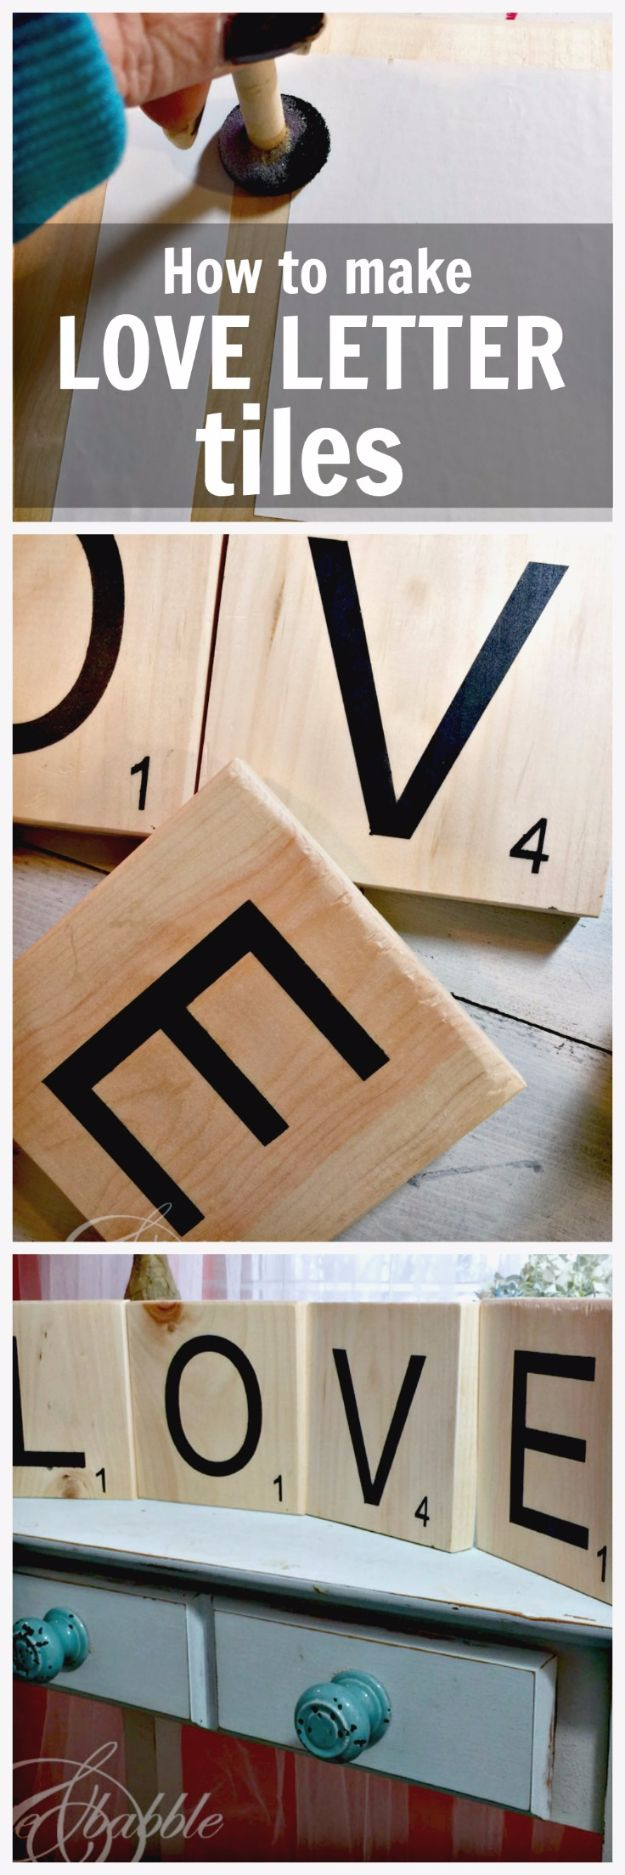 DIY Wall Letters and Word Signs - Love Letter Tiles - Initials Wall Art for Creative Home Decor Ideas - Cool Architectural Letter Projects and Wall Art Tutorials for Living Room Decor, Bedroom Ideas. Girl or Boy Nursery. Paint, Glitter, String Art, Easy Cardboard and Rustic Wooden Ideas - DIY Projects and Crafts by DIY JOY http://diyjoy.com/diy-letter-word-signs